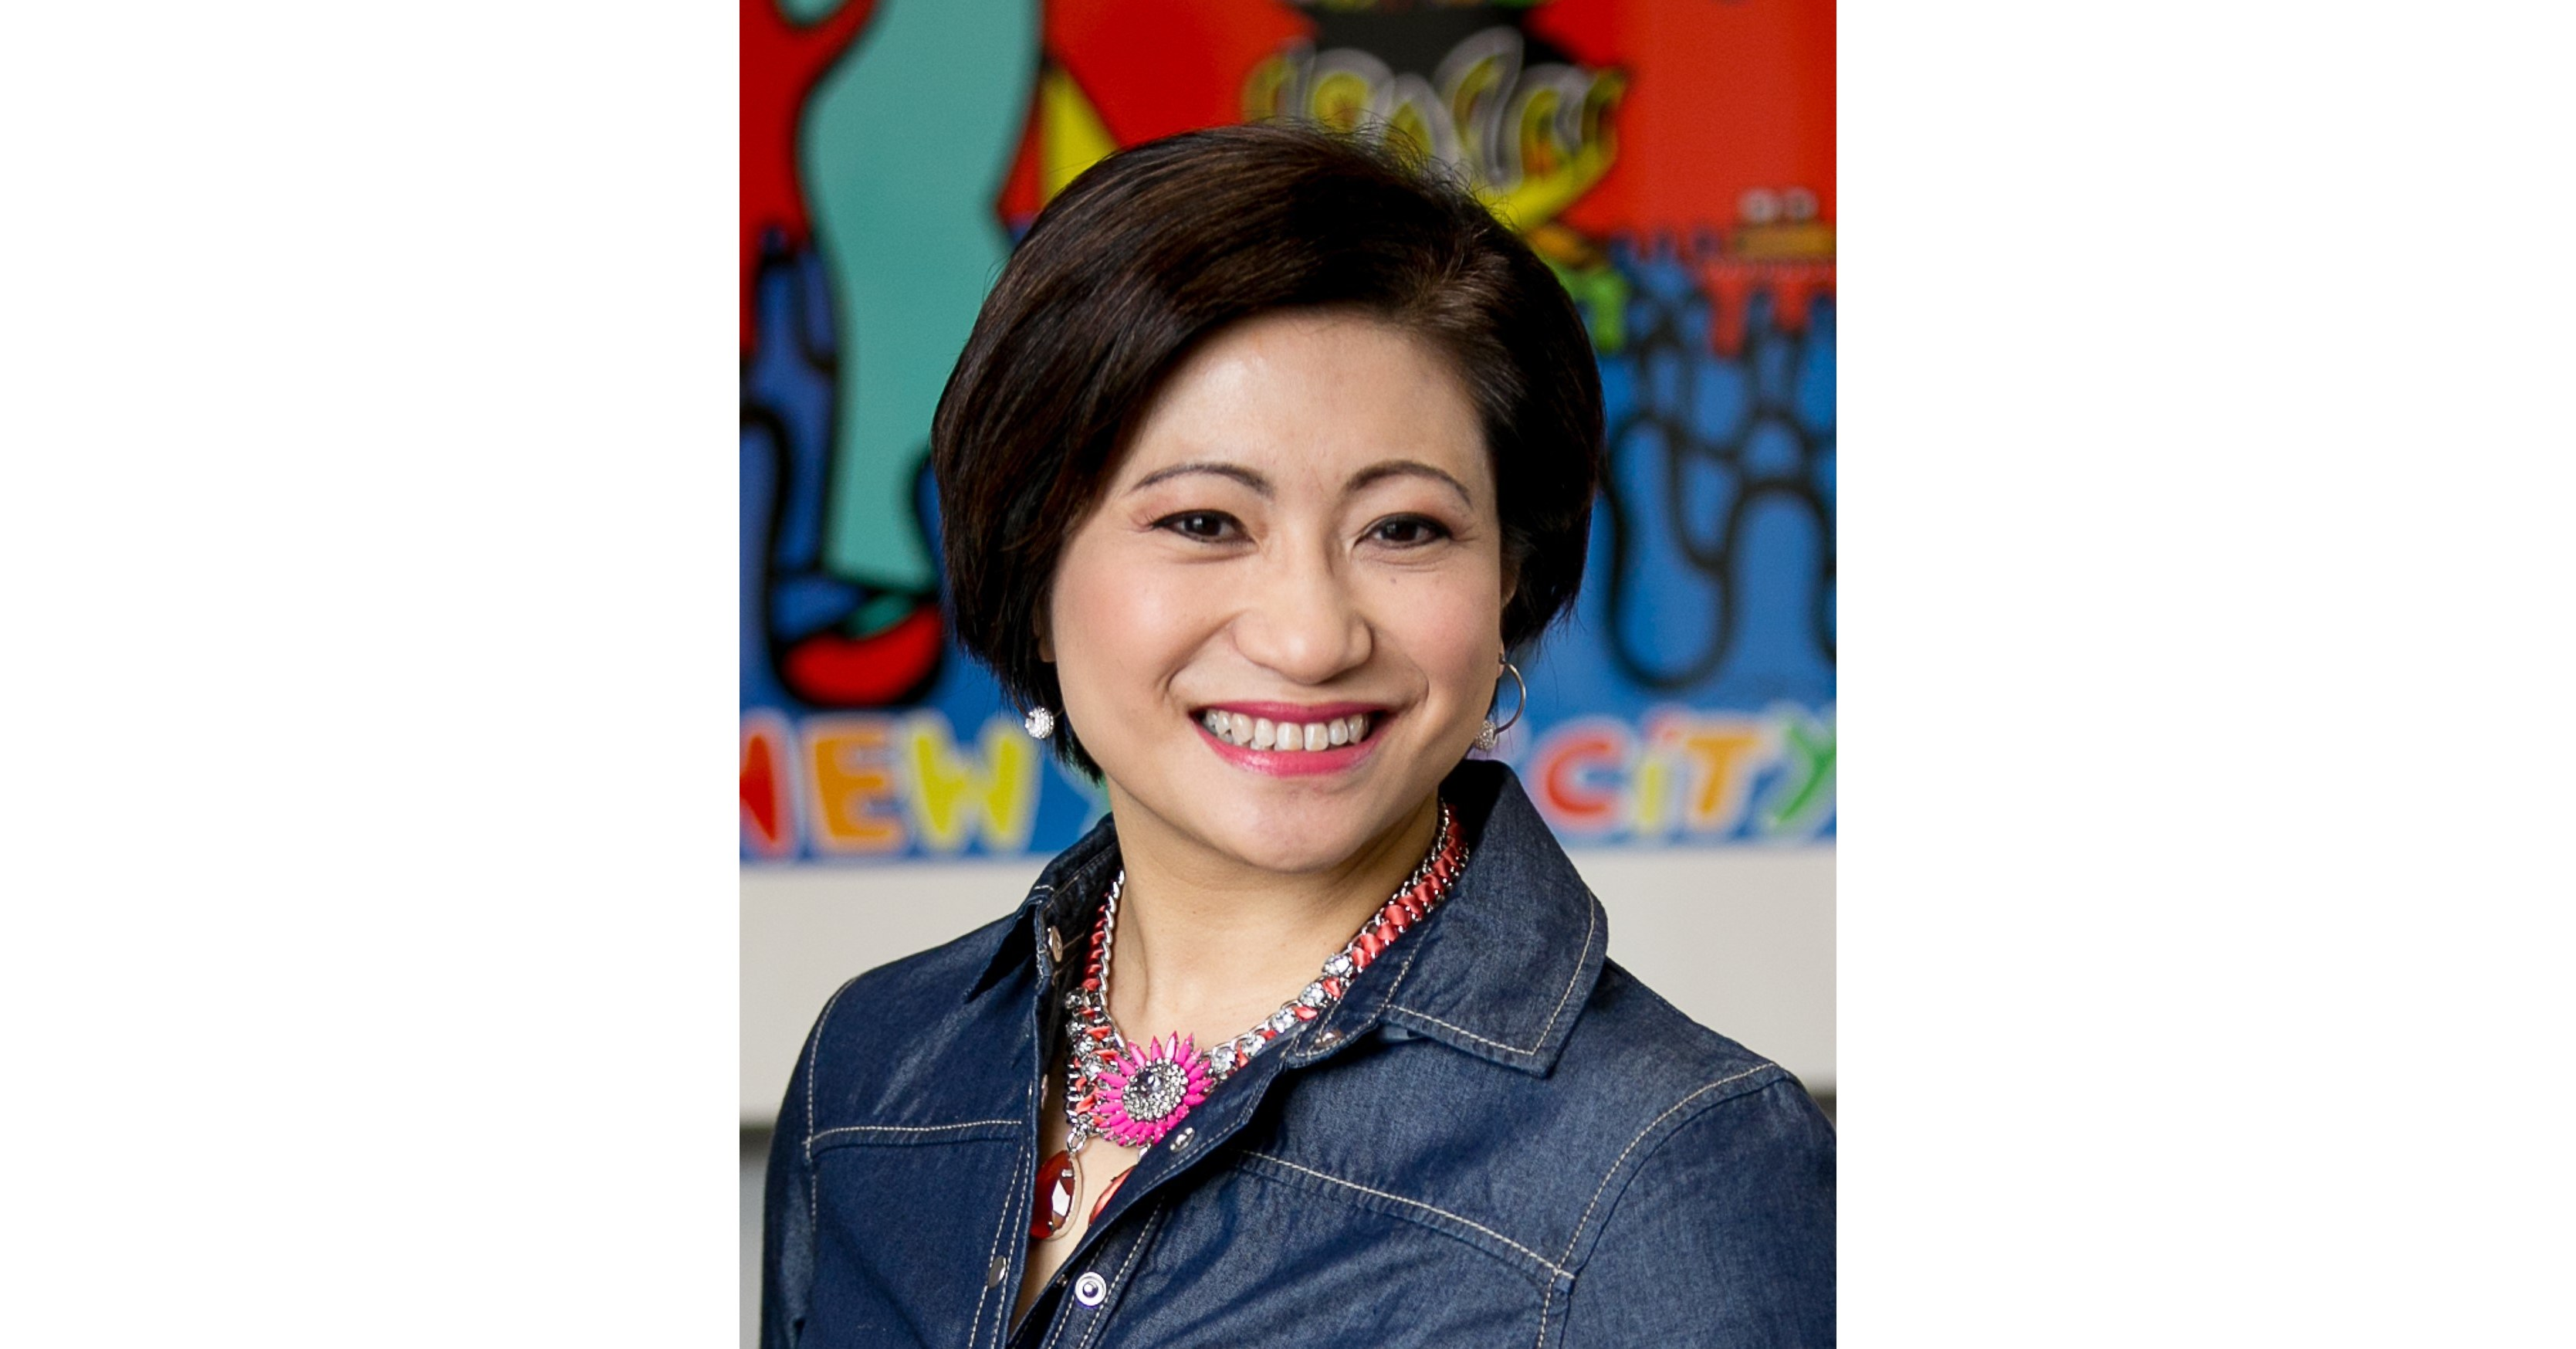 www.prnewswire.com: Nu Skin Appoints Transformational Beauty Industry Executive Connie Tang to Lead Global Growth and Customer Experience